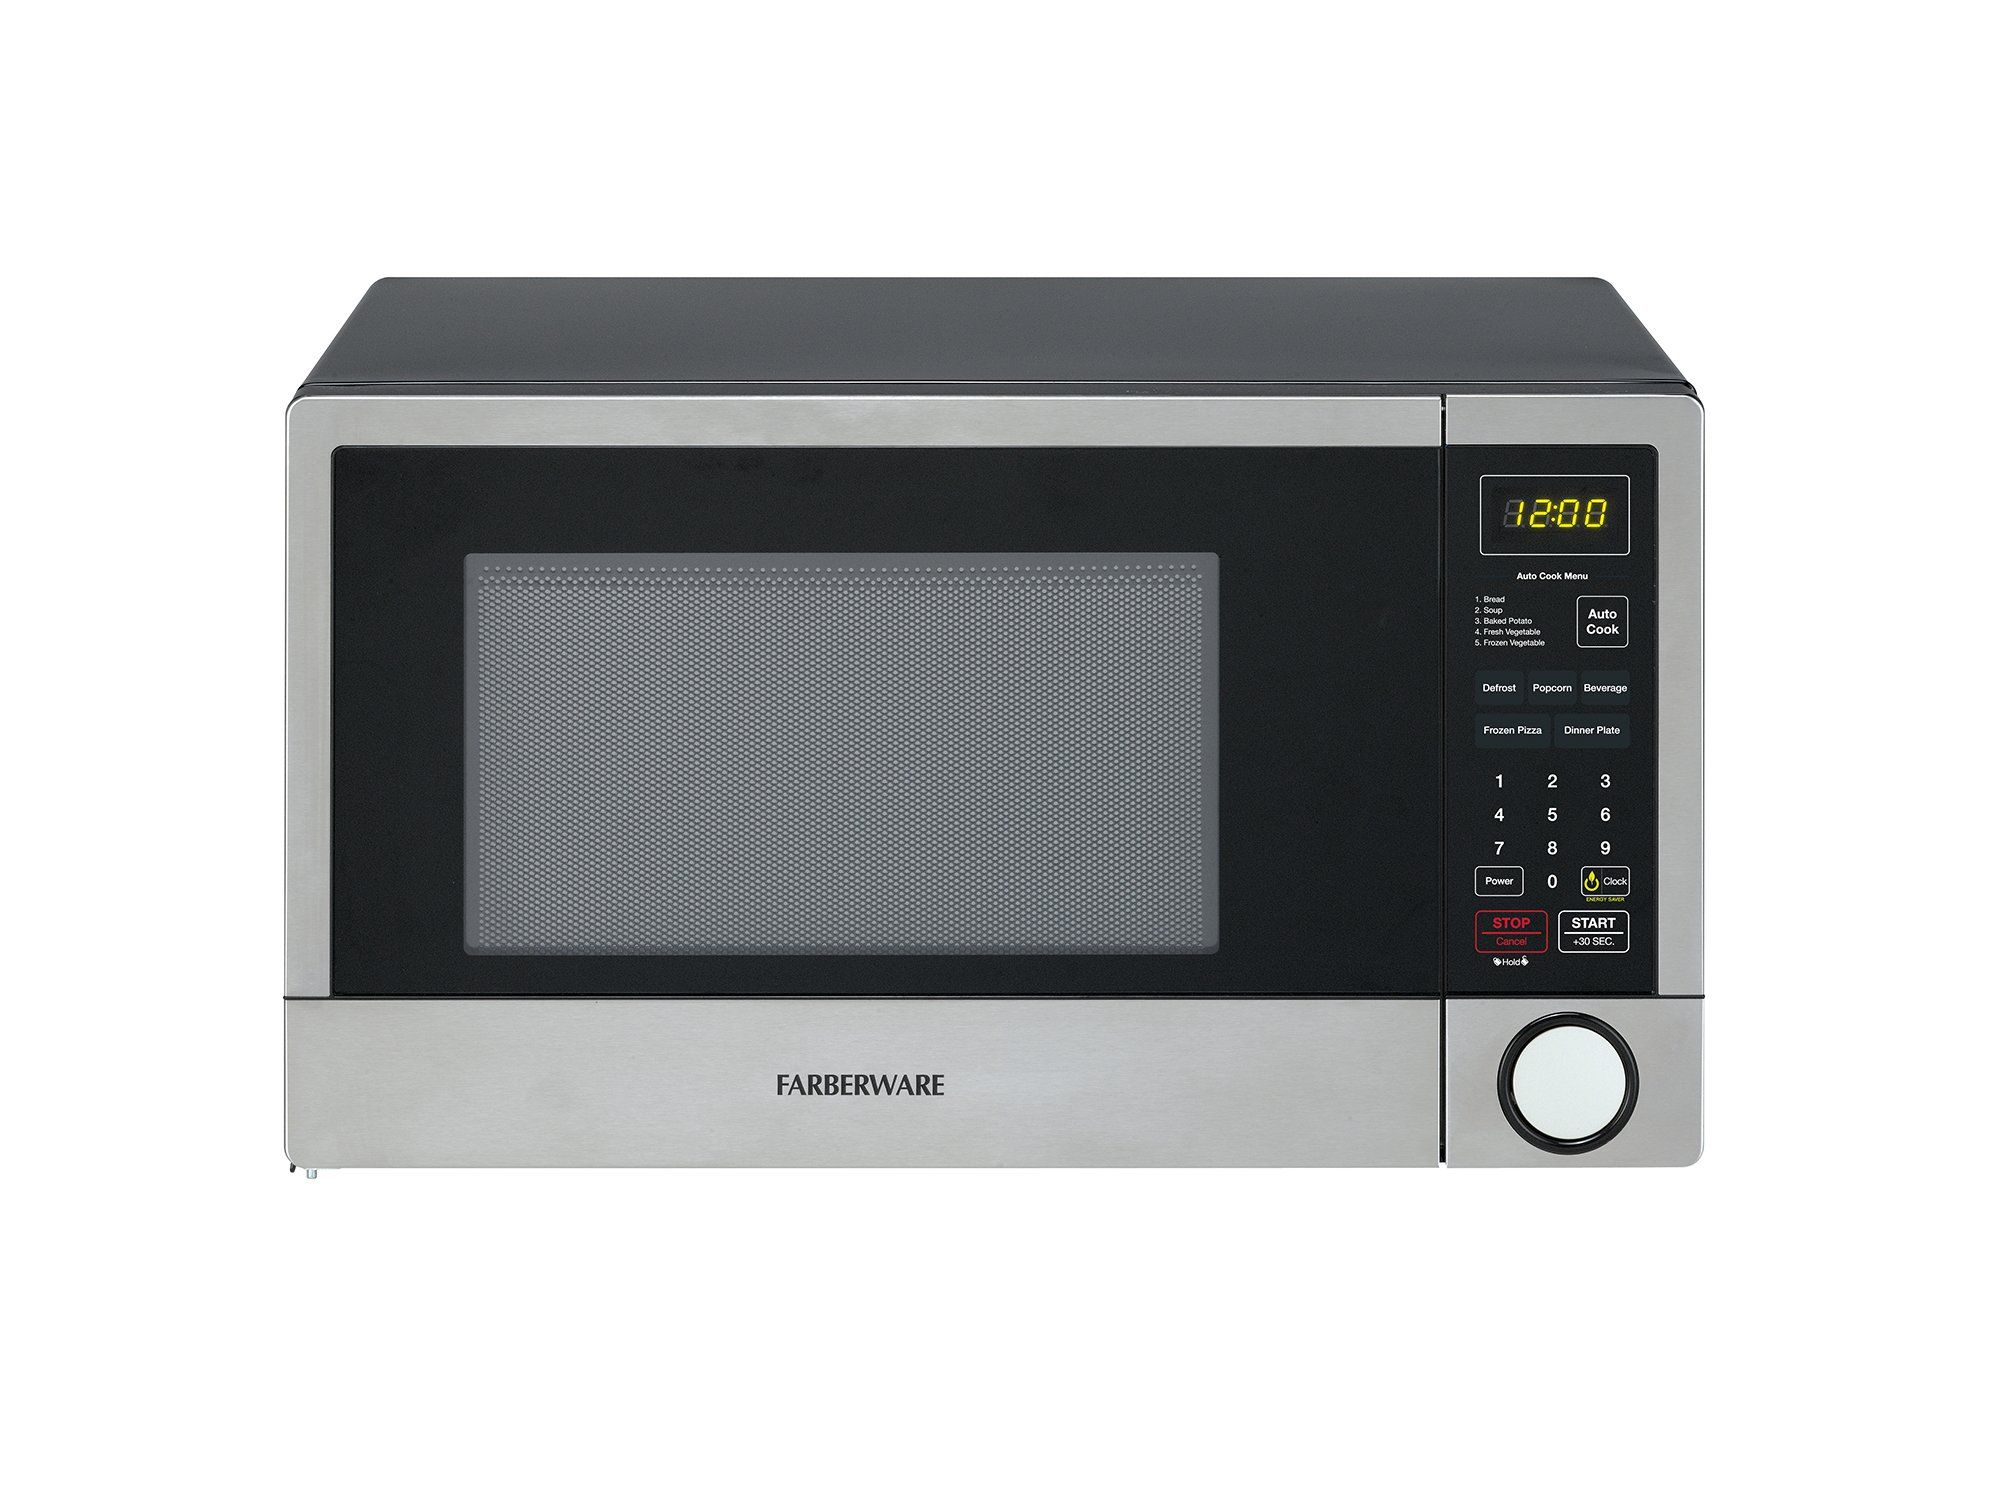 Farberware Fmo11hbtbki 1 1 Cubic Foot 1000 Watt Microwave Oven With Crs Technology Stainless Steel Read More R Farberware Microwave Oven Specialty Appliances